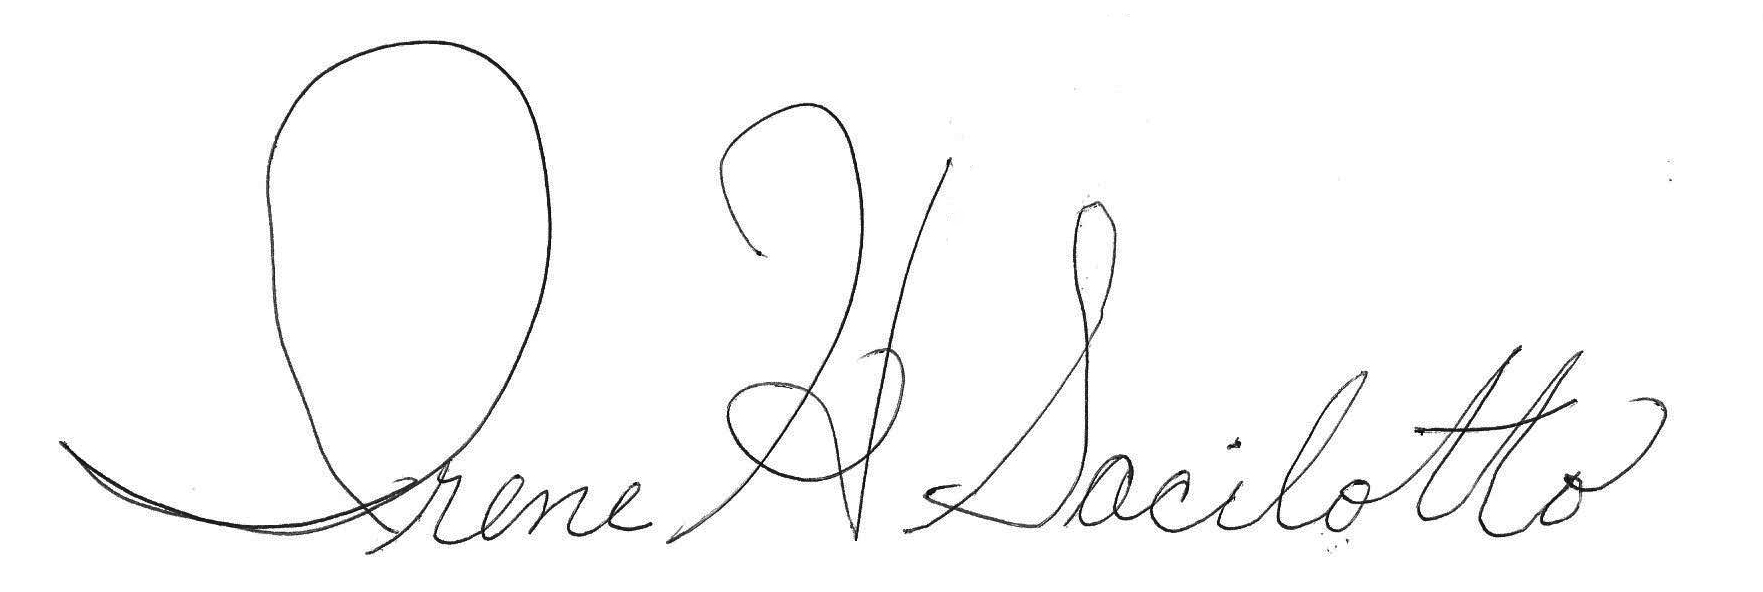 Irene Sacilotto Signature